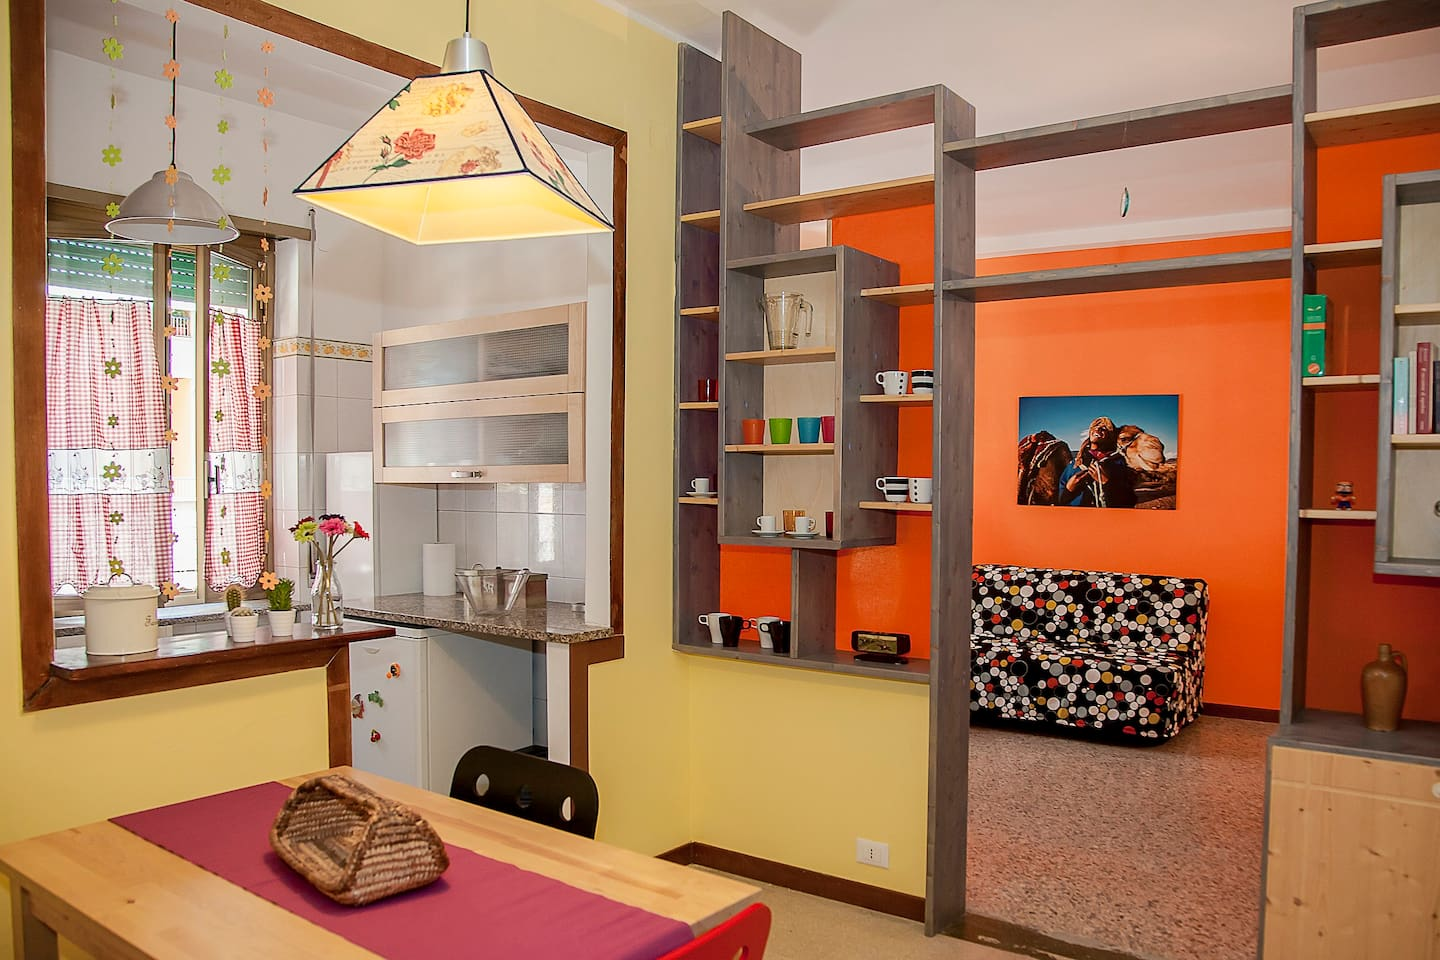 Dinette, kitchen, bookcase and living room